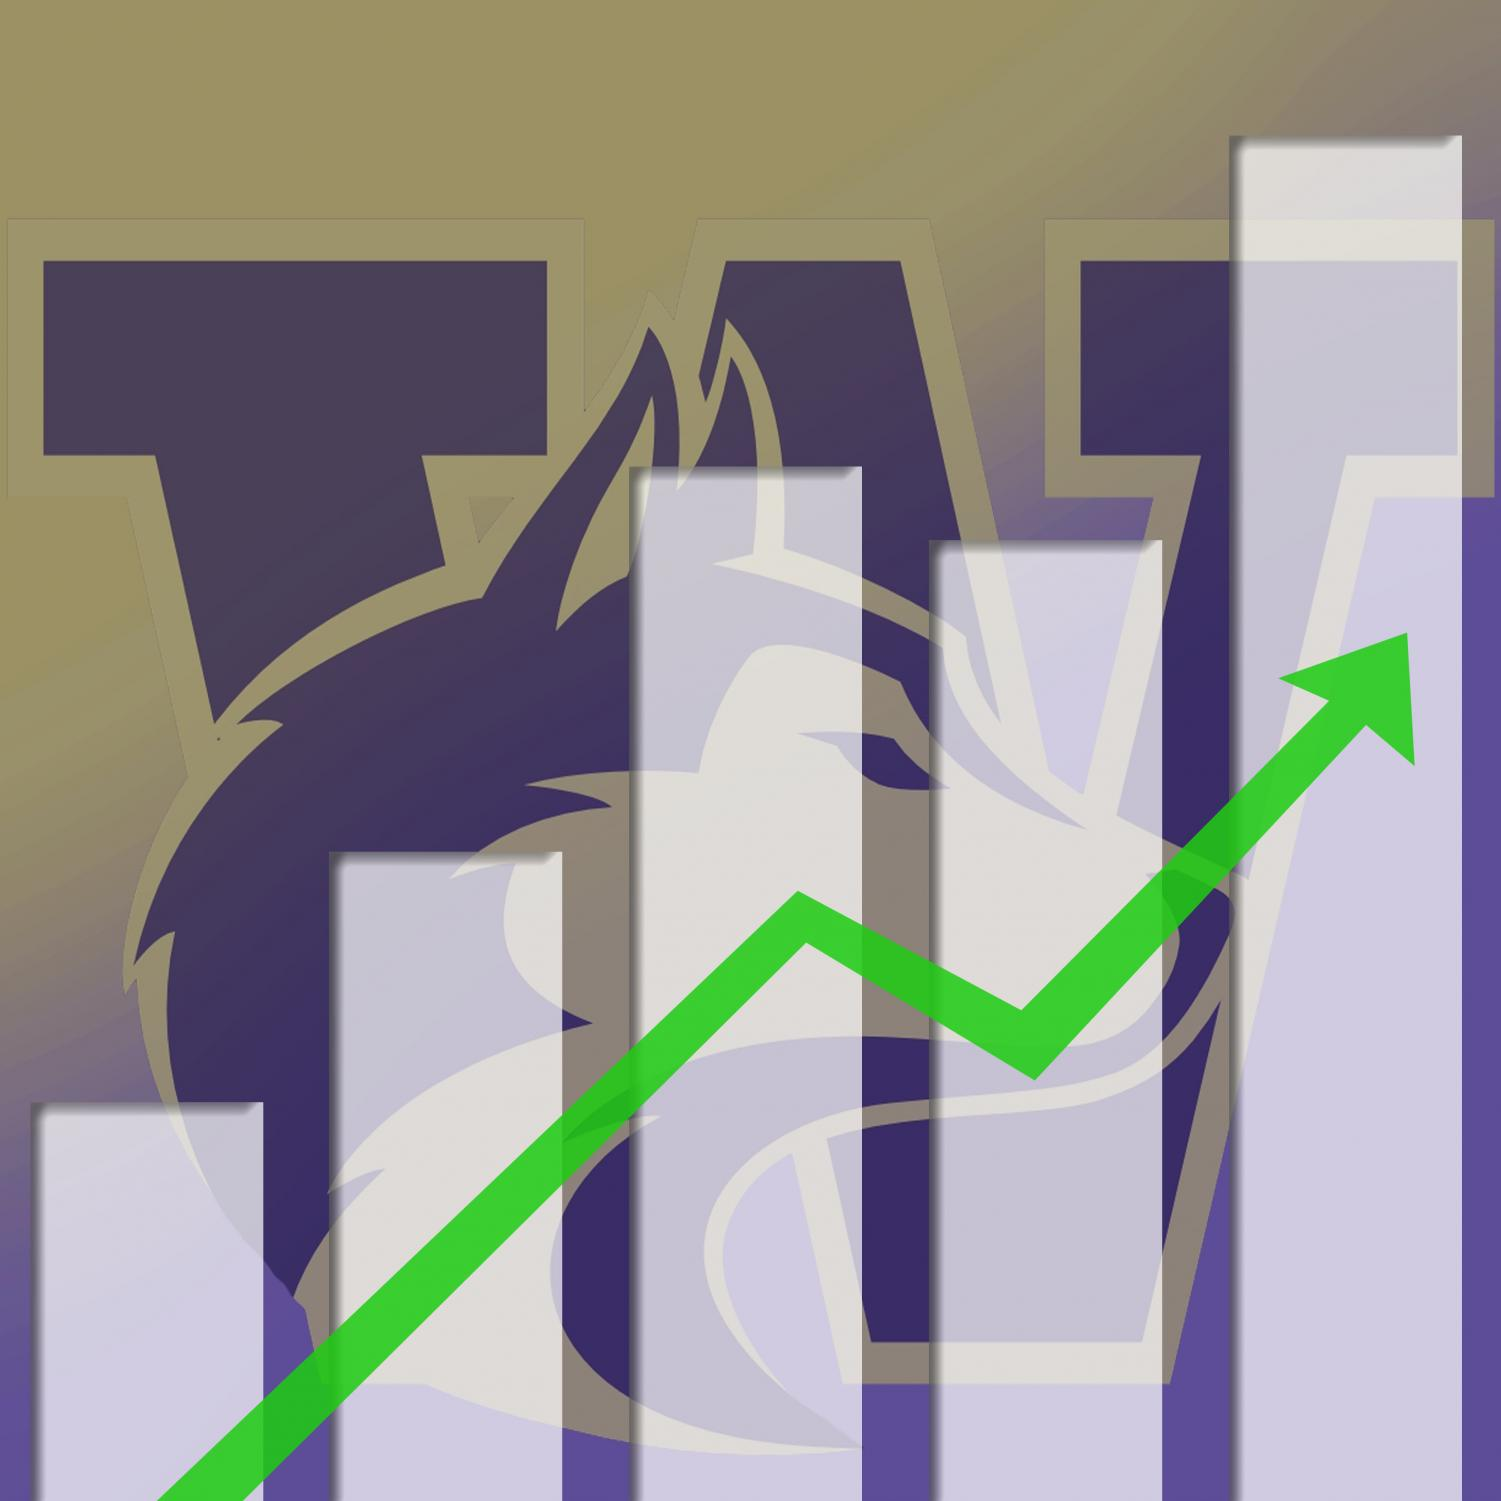 UPWARD TREND: While this season is over for the huskies the team is likely to perform even better in the following years and continue to improve.